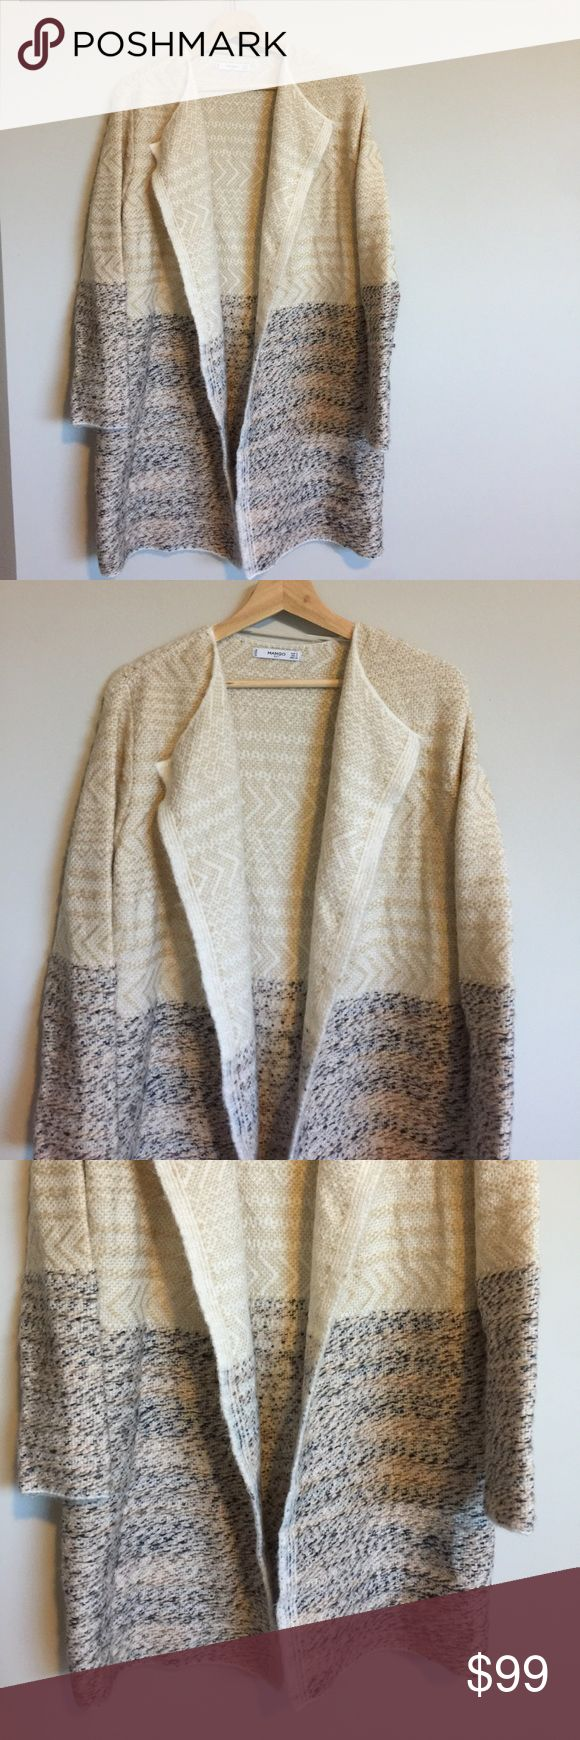 Mango Sweater Duster Mango sweater Duster that I bought in Norway while on vacation. Never worn/ no tags attached. Size Small.              🌵i LOVE offers!                                                                         🌵bundle and save 15% 🌵shipped from a smoke/pet free home                                                                                                     ✖️no trades/ PayPal Mango Sweaters Cardigans